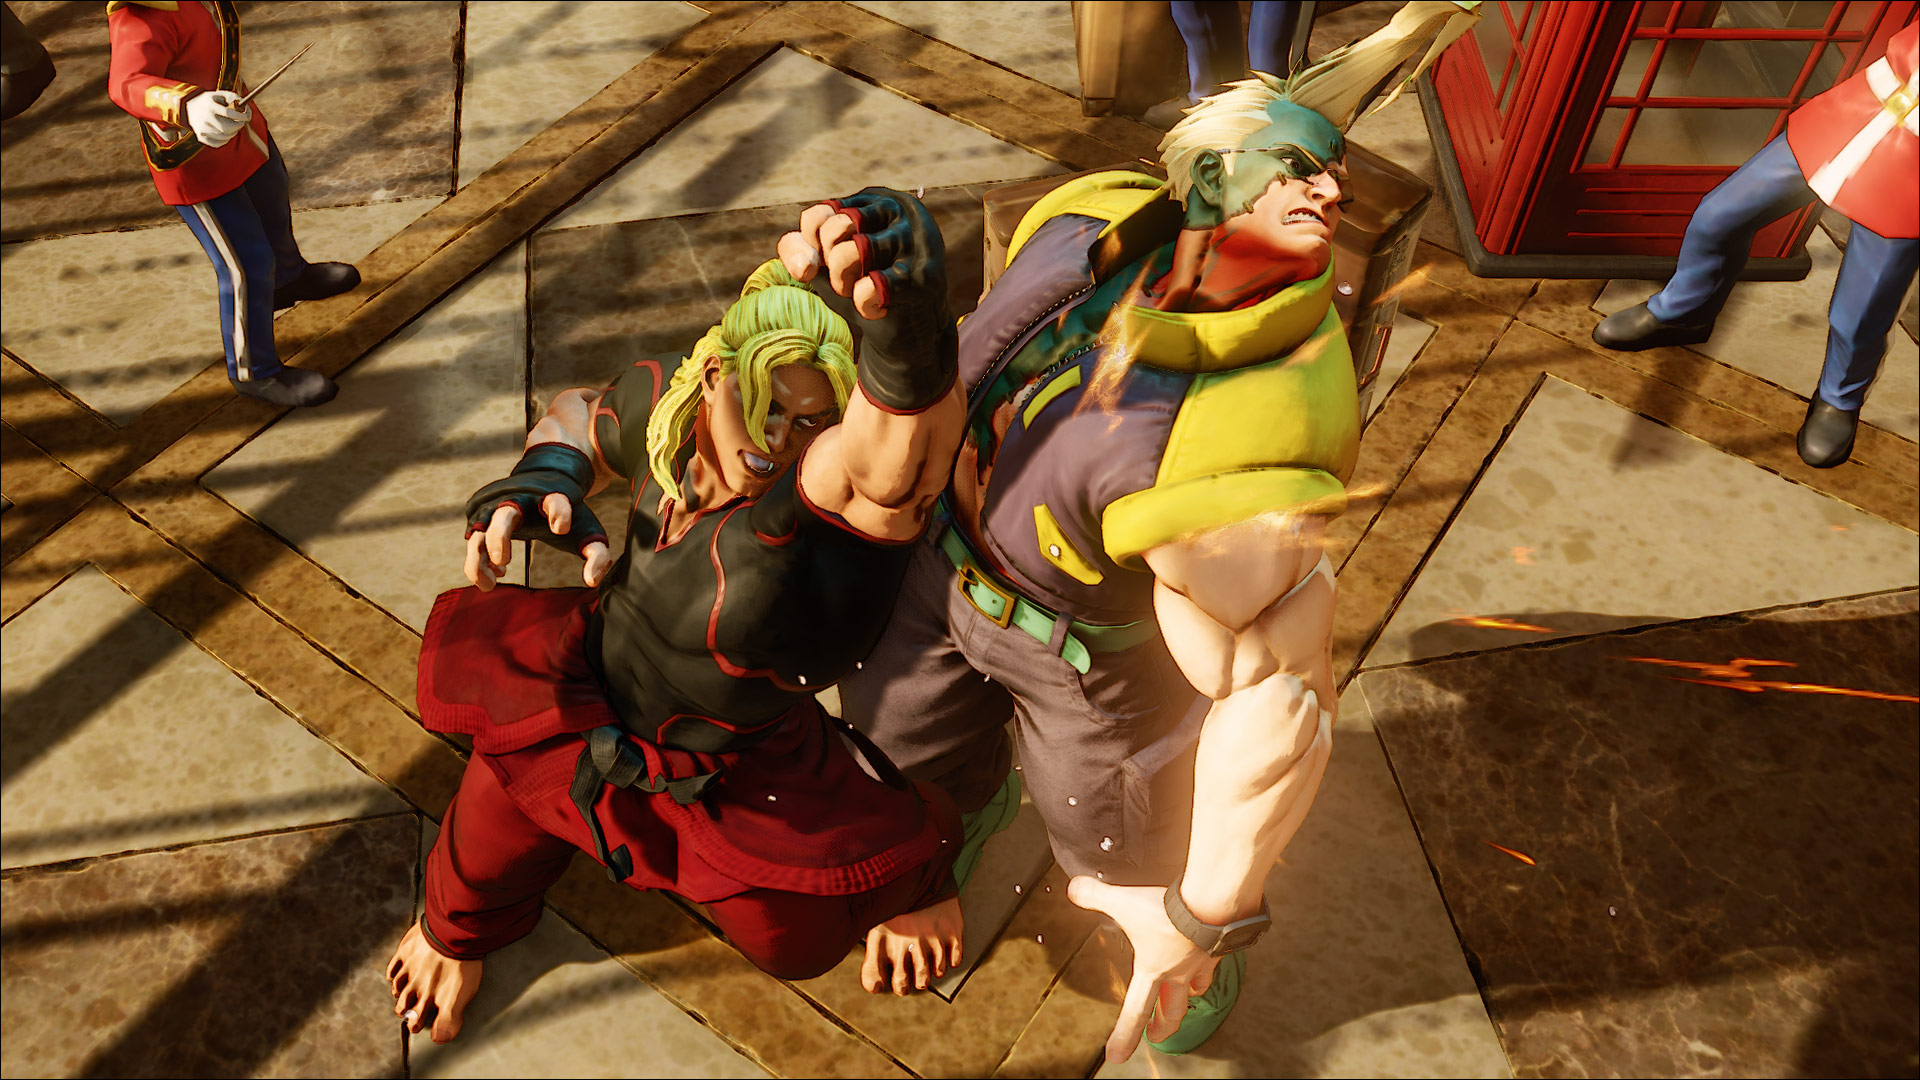 Ken Street Fighter 5 SDCC 2015 reveal 10 out of 13 image gallery